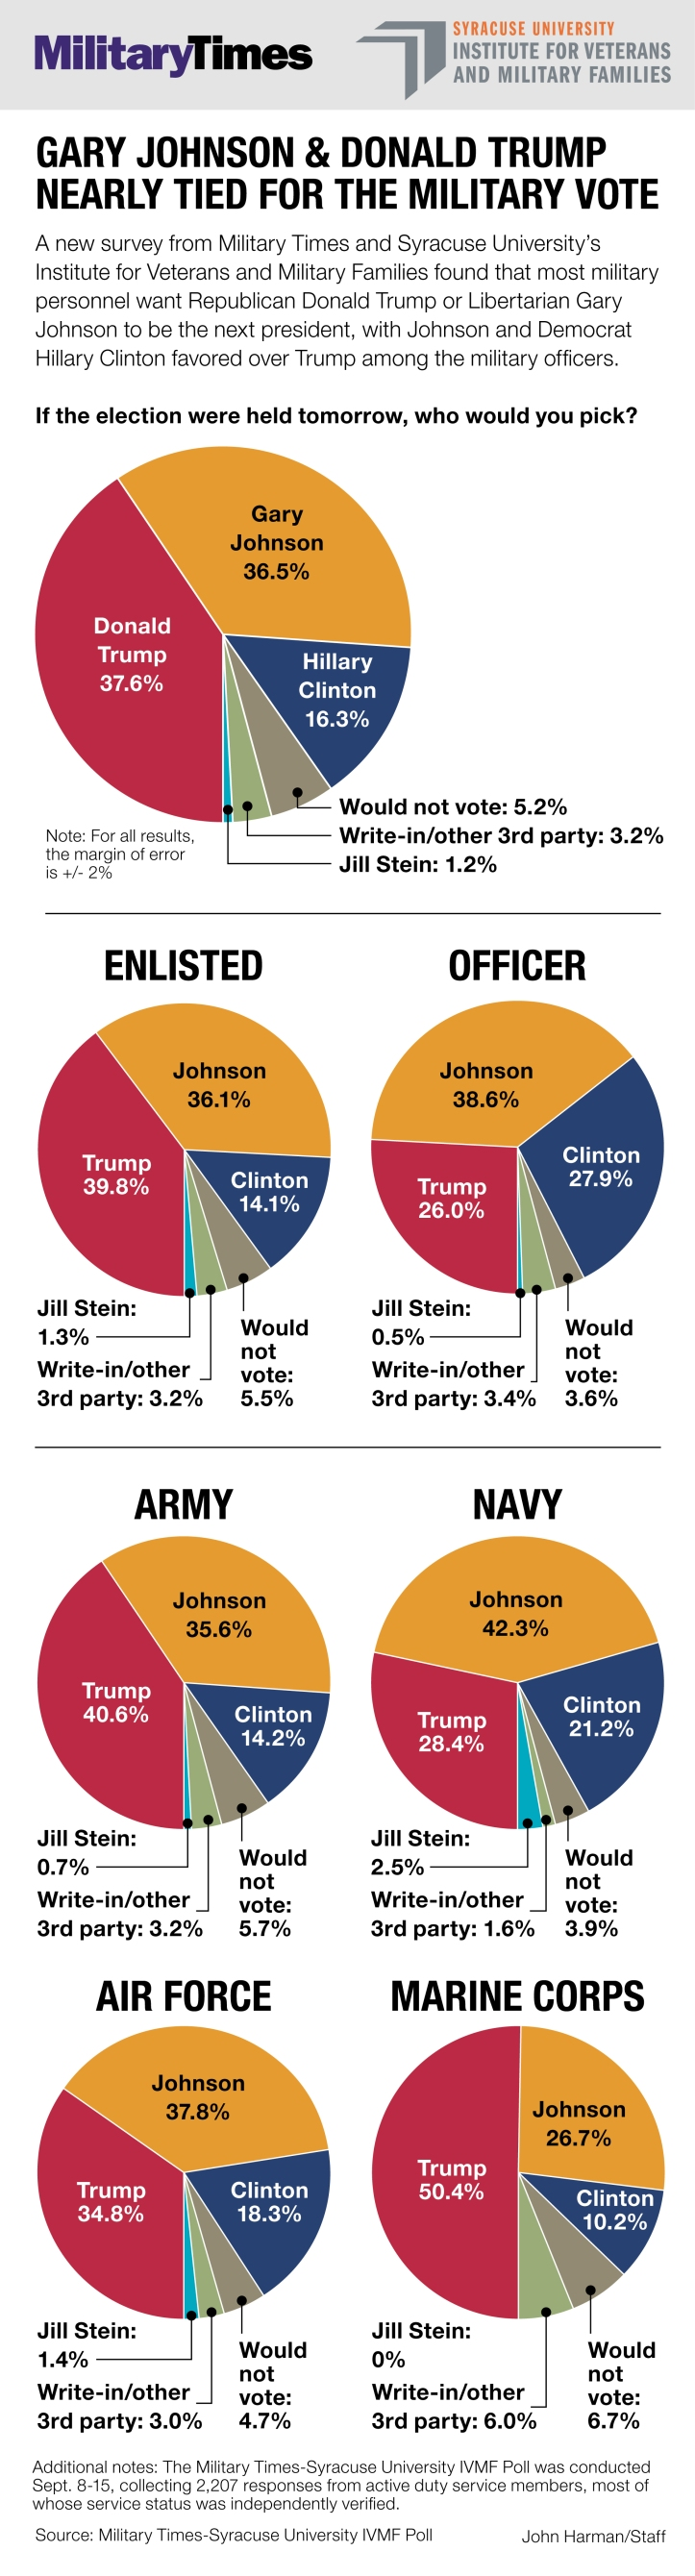 military-times-ivmf-poll-september-2016